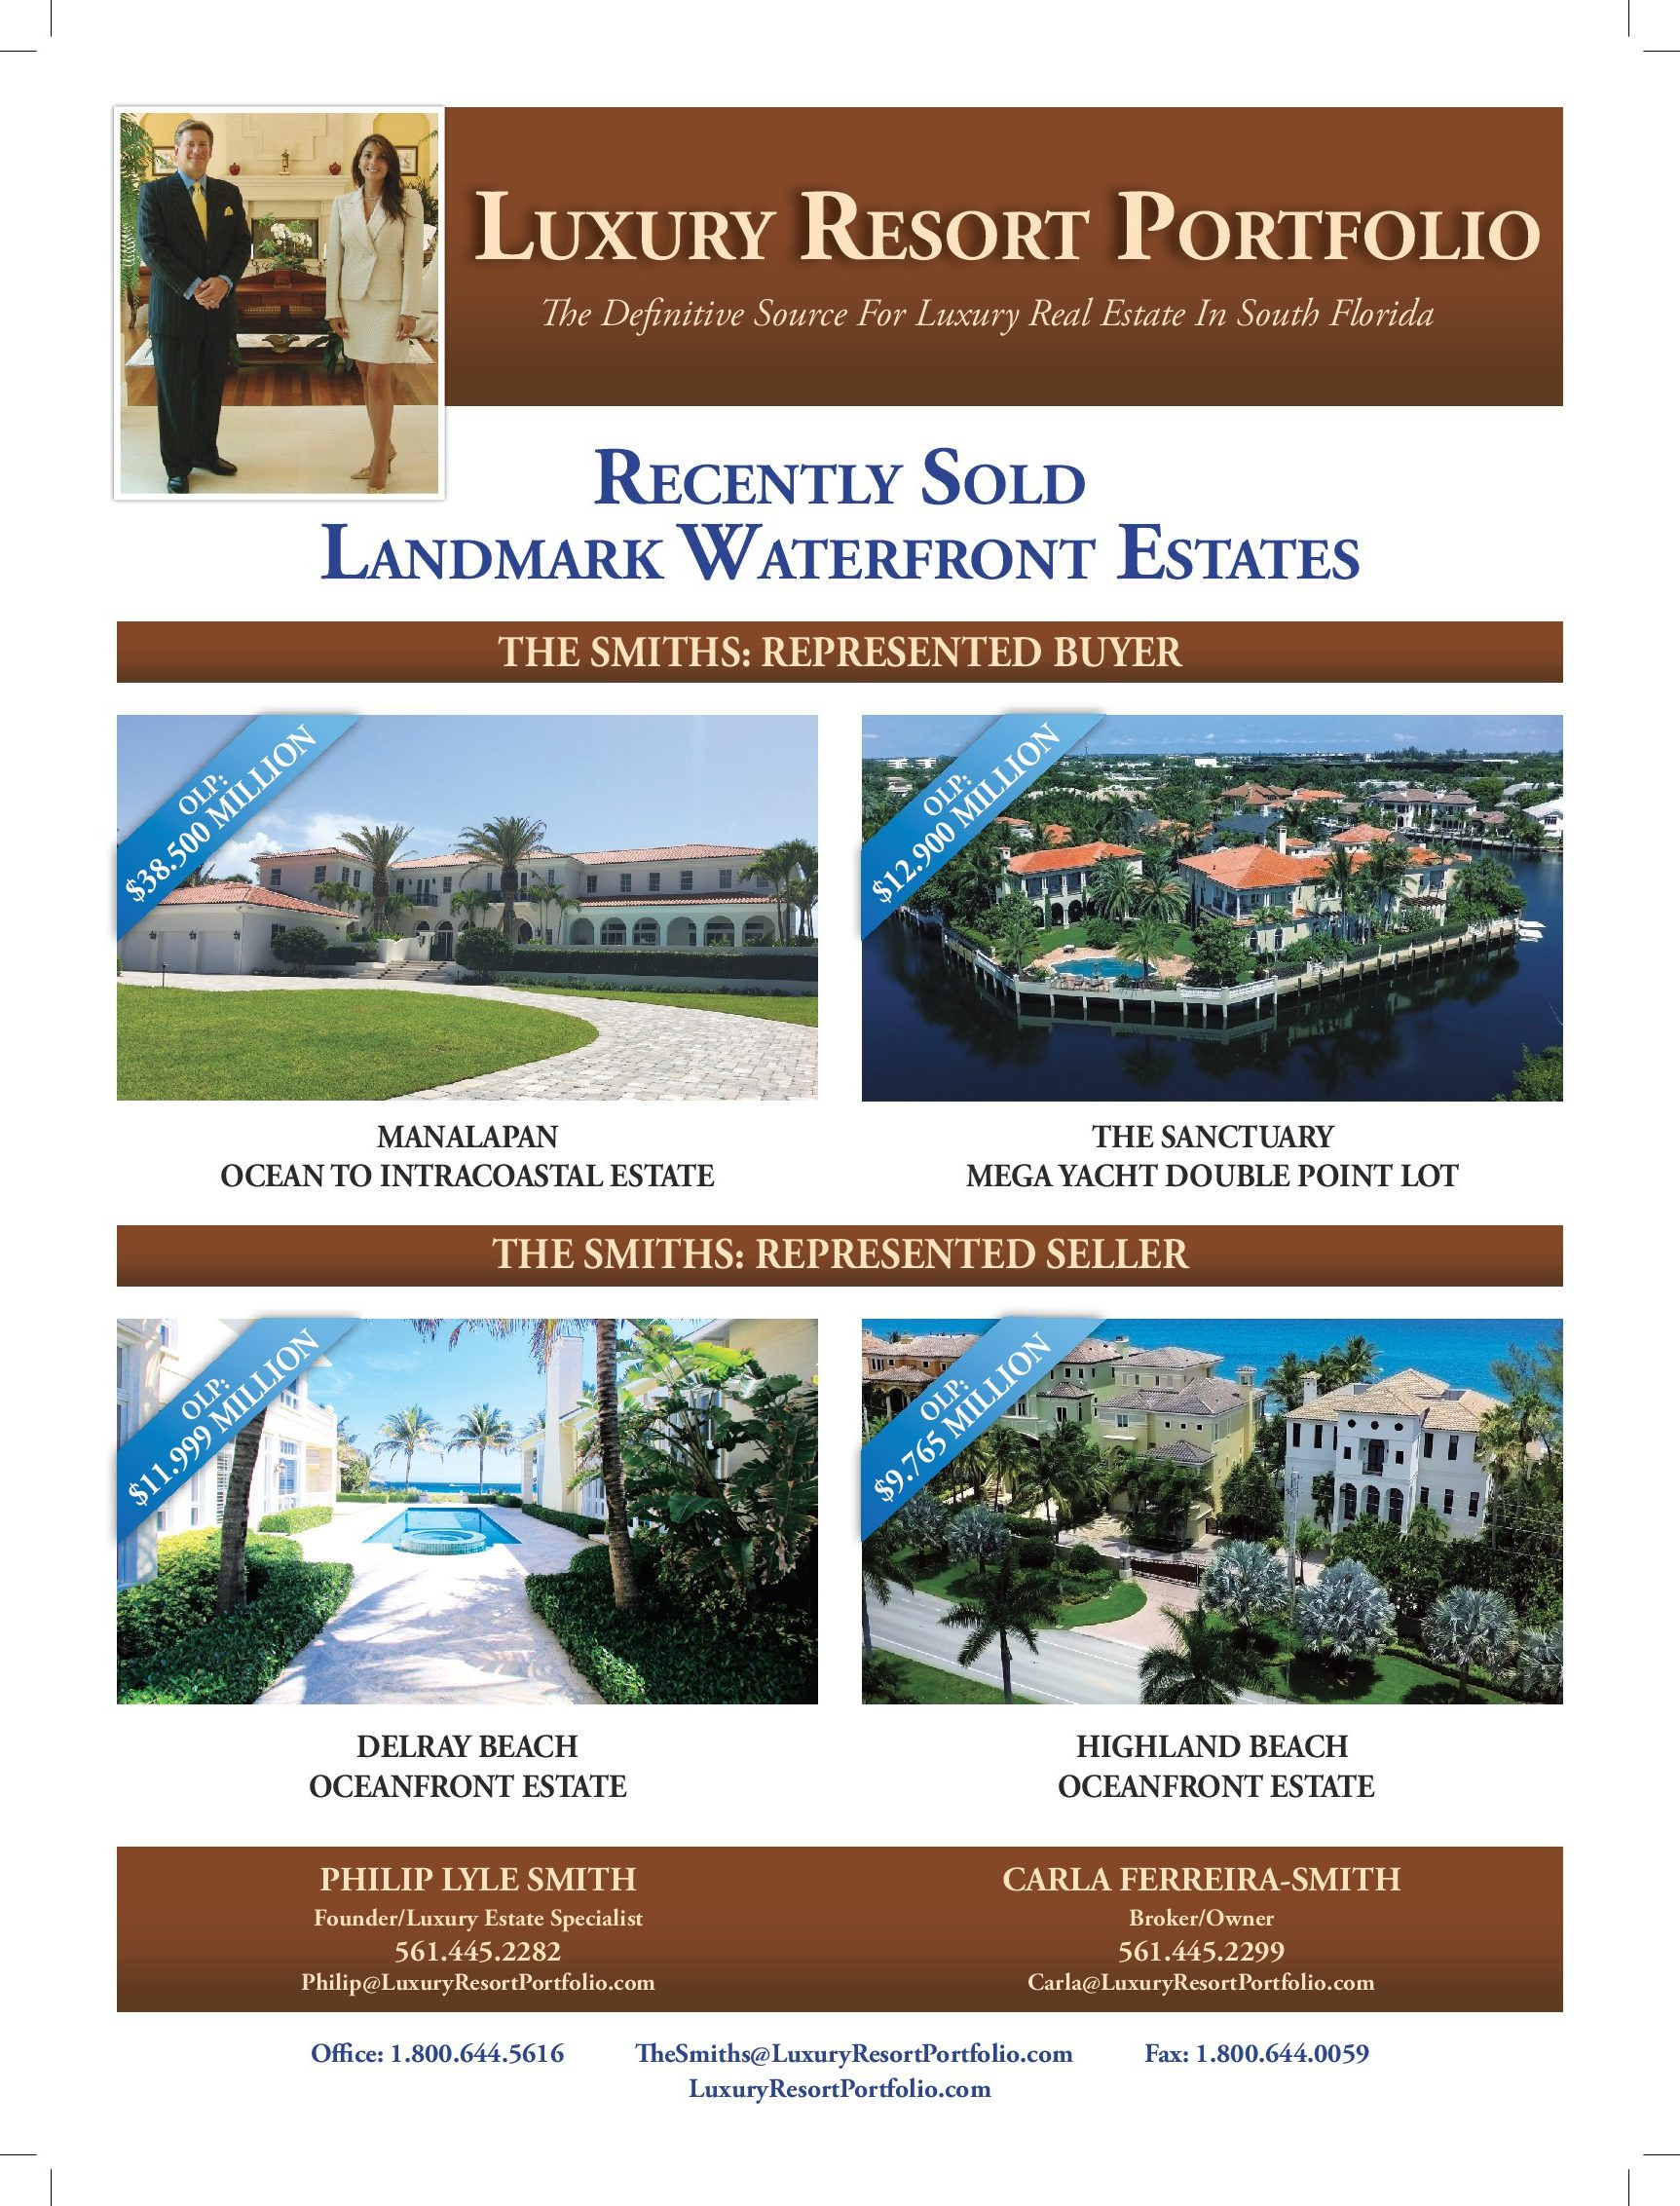 South Florida Waterfront Luxury Real Estate Specialists Luxury Resort  Portfolio South Florida Waterfront Luxury Real Estate Sales Specialists